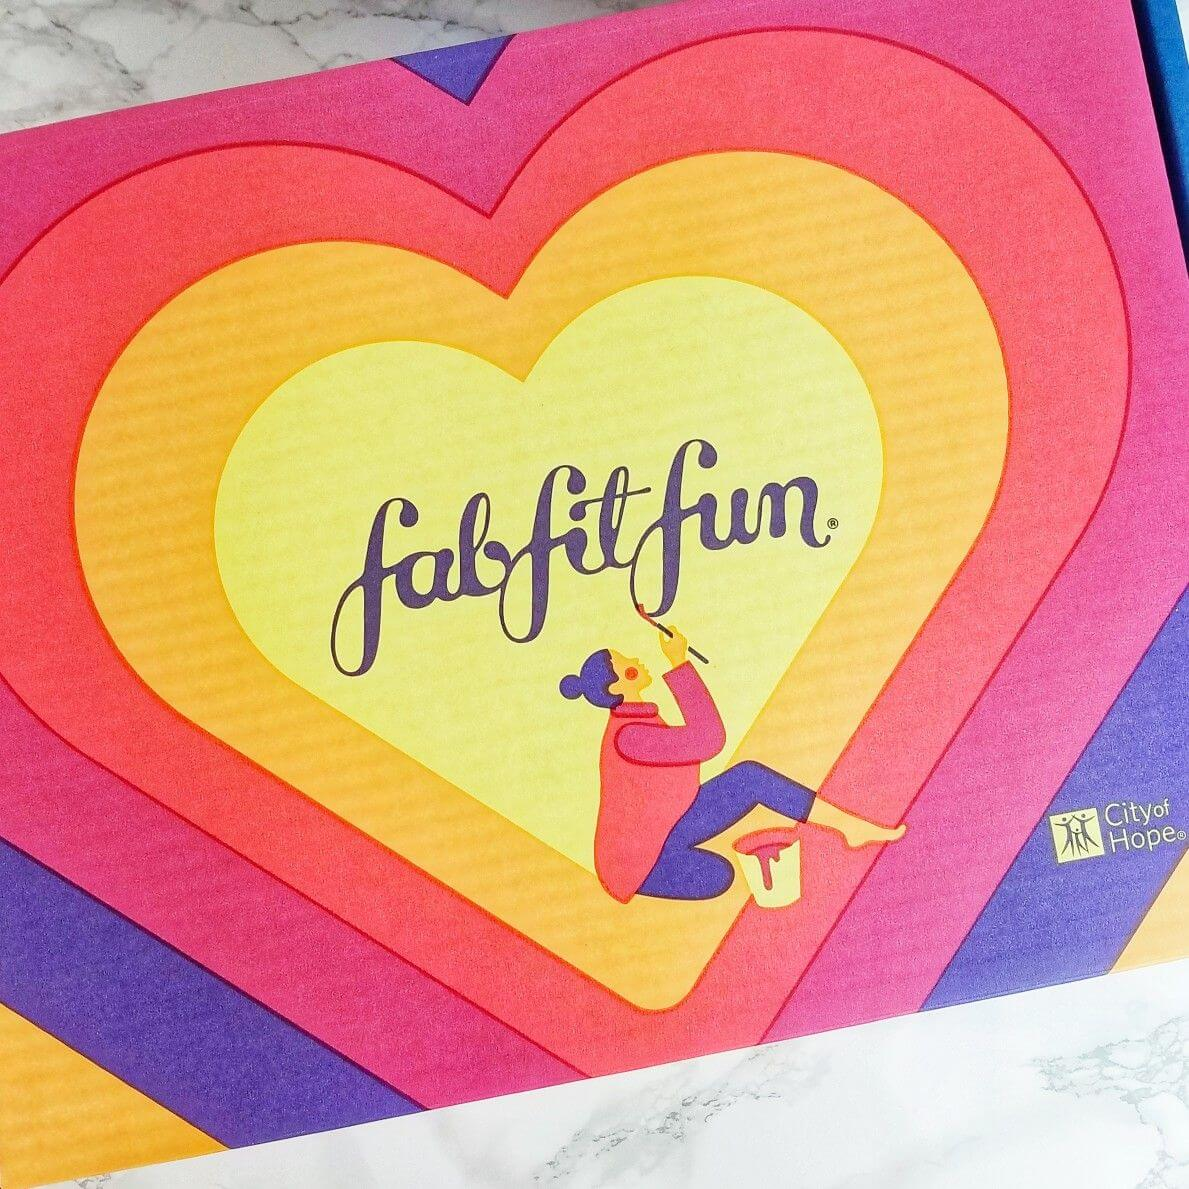 Check out My Very First Fab Fit Fun Seasonal Subscription Box for Fall - 2019 Pretty Box Design